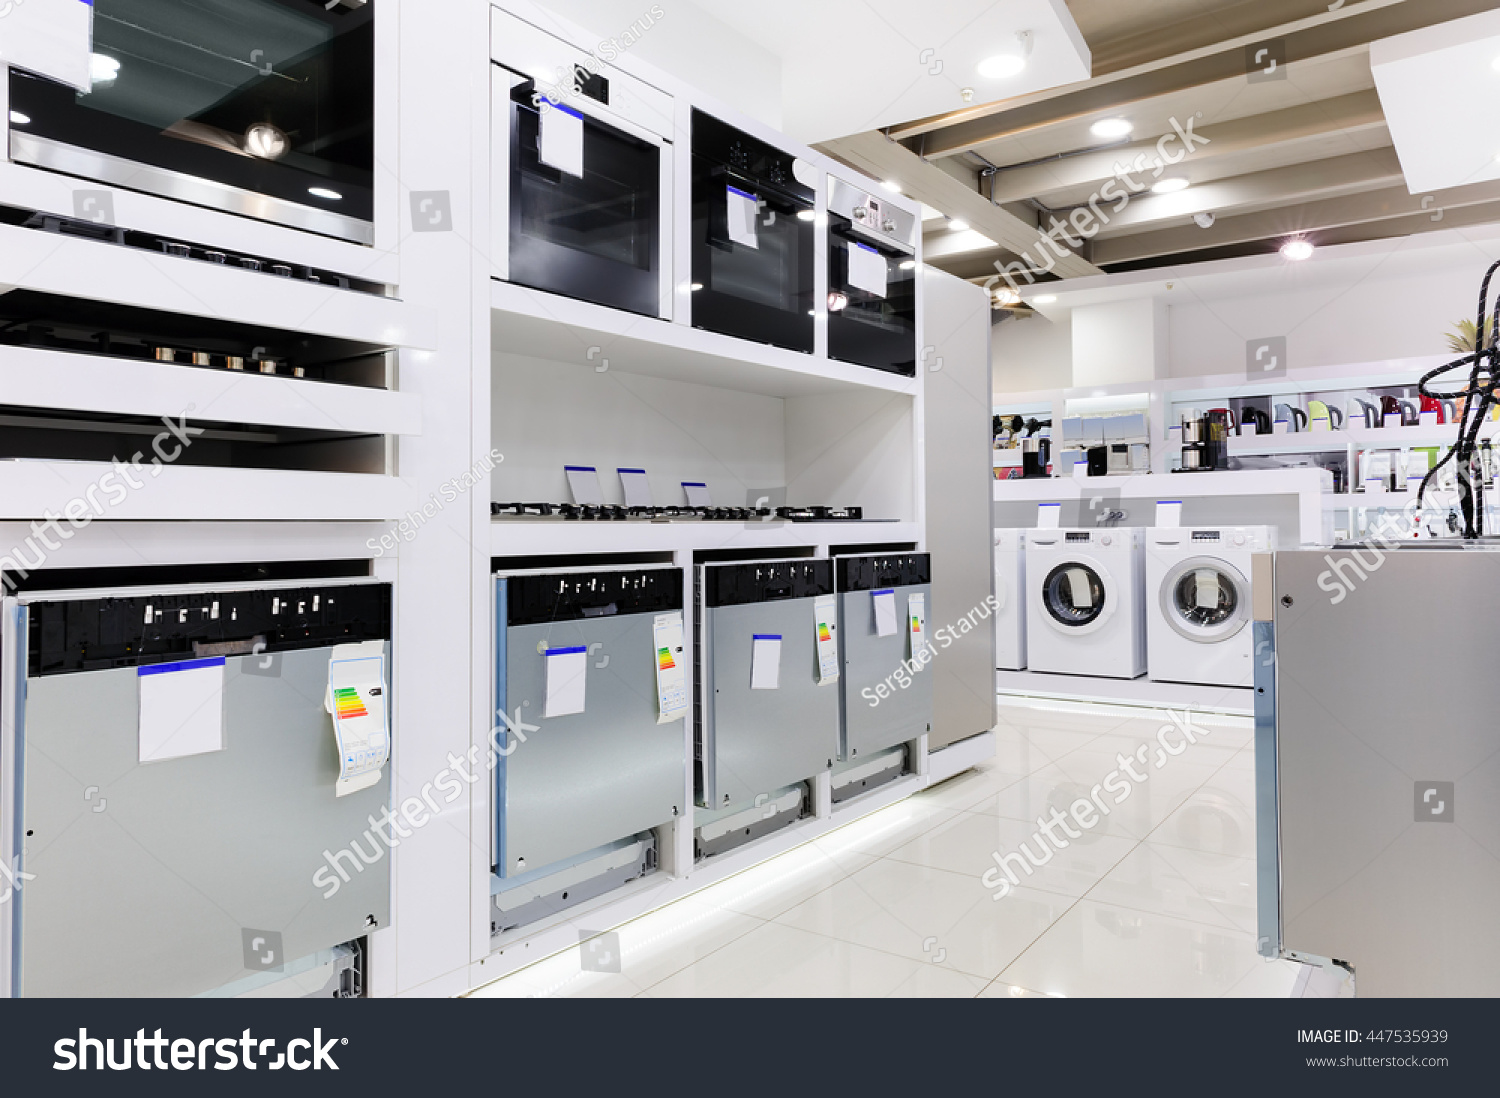 Gas Electric Ovens Other Home Related Stock Photo (Edit Now ...